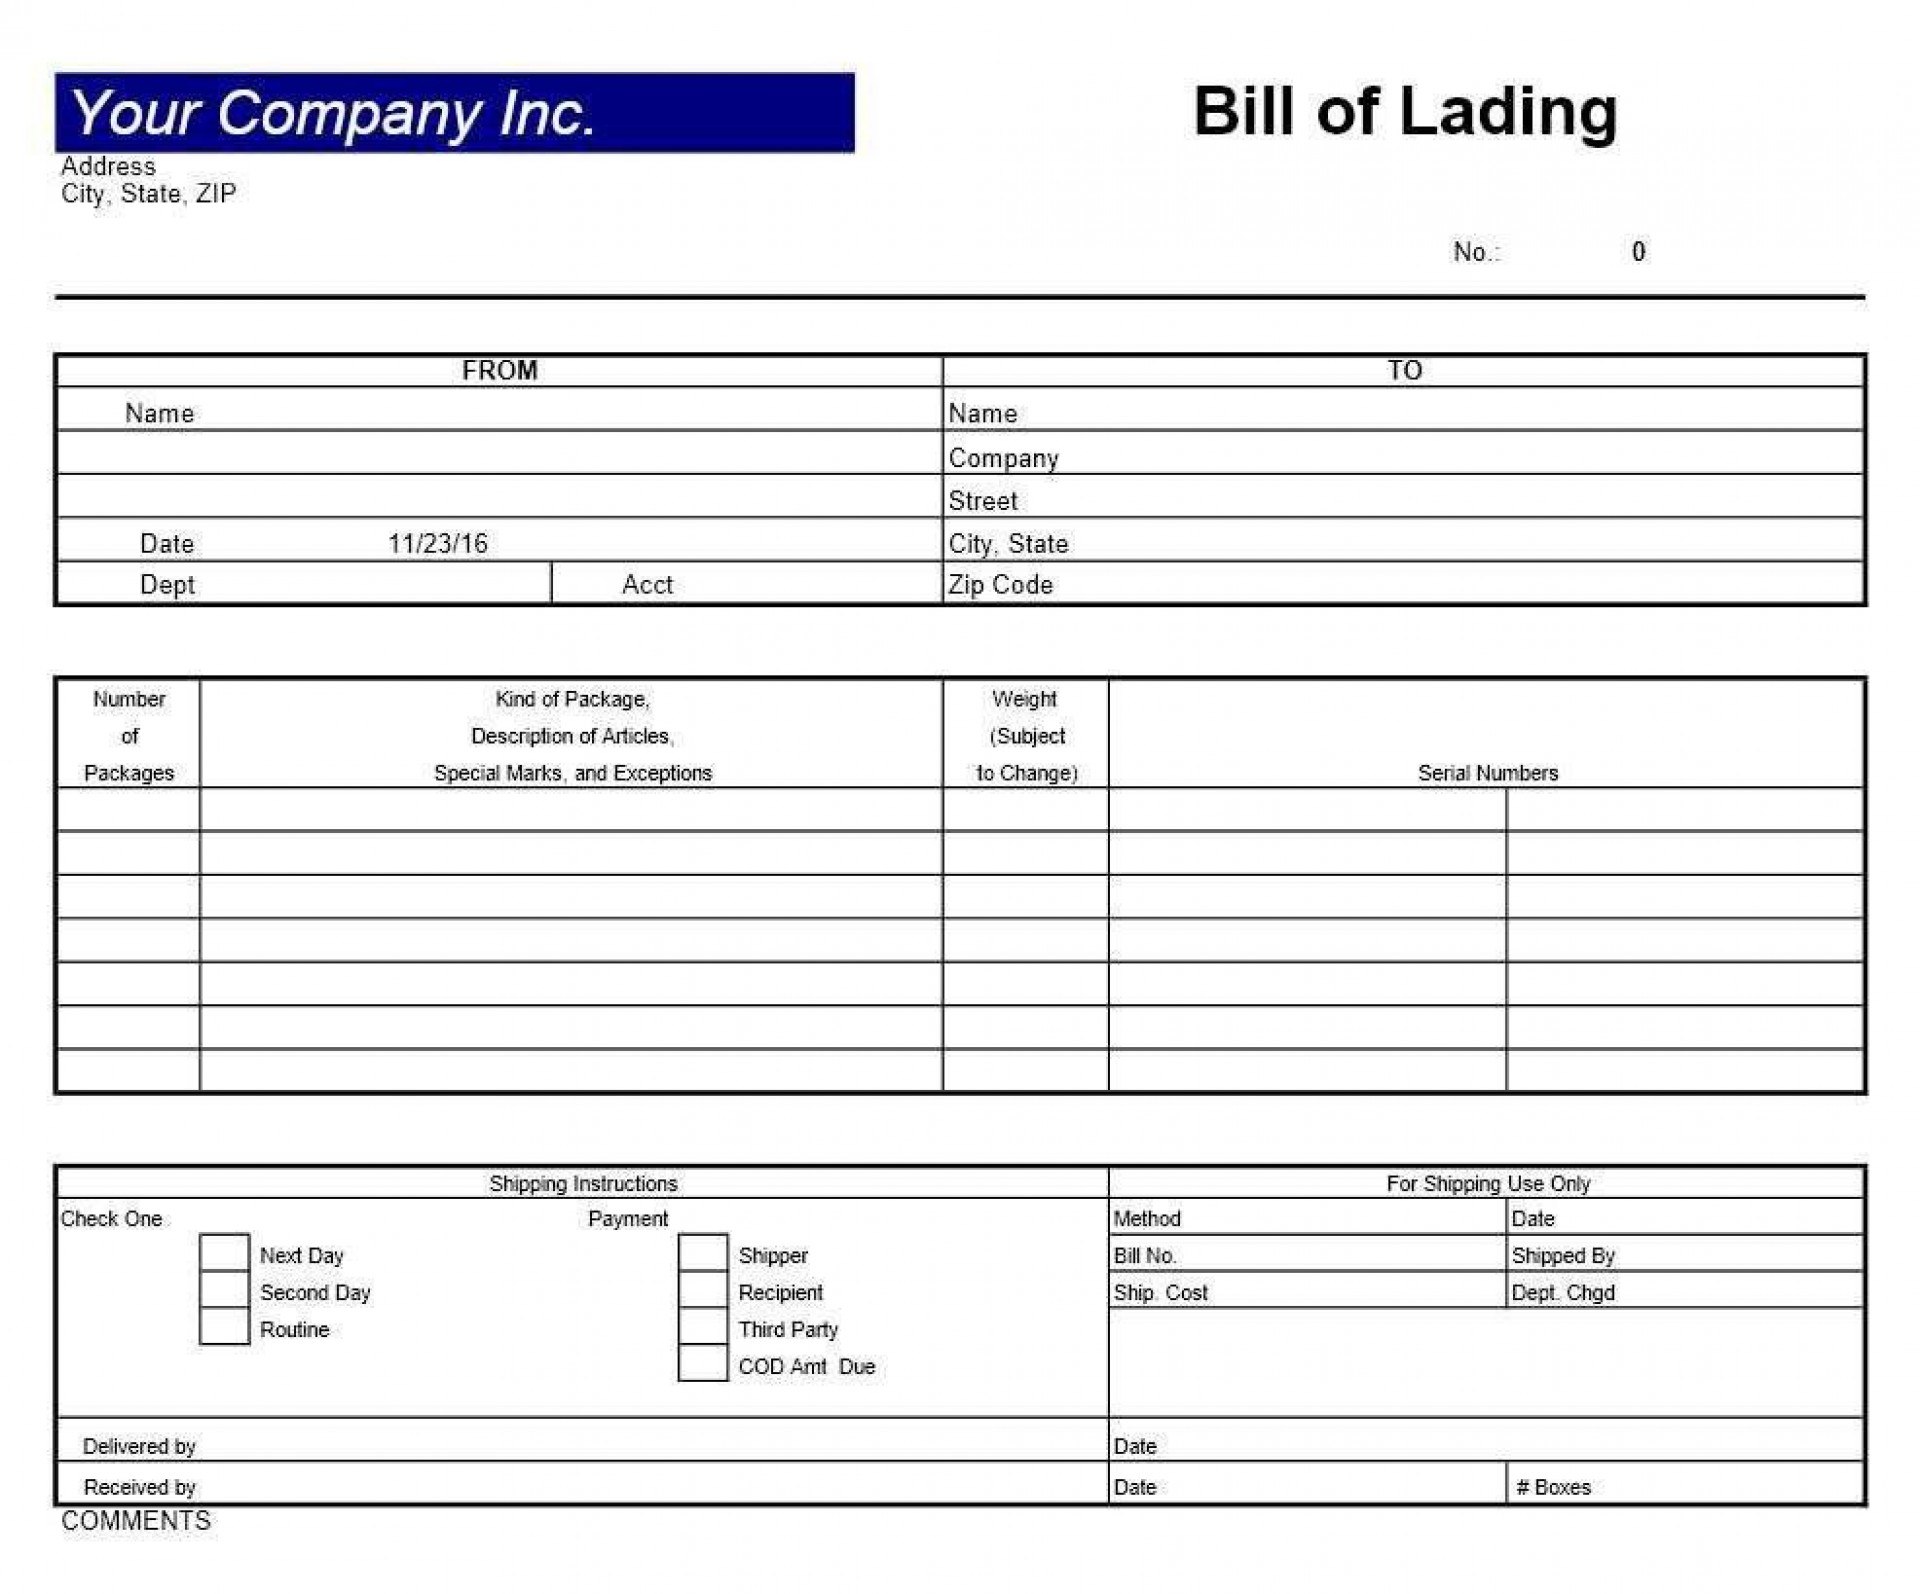 003 Incredible Bill Of Lading Template Excel High Resolution  Simple House Format In1920